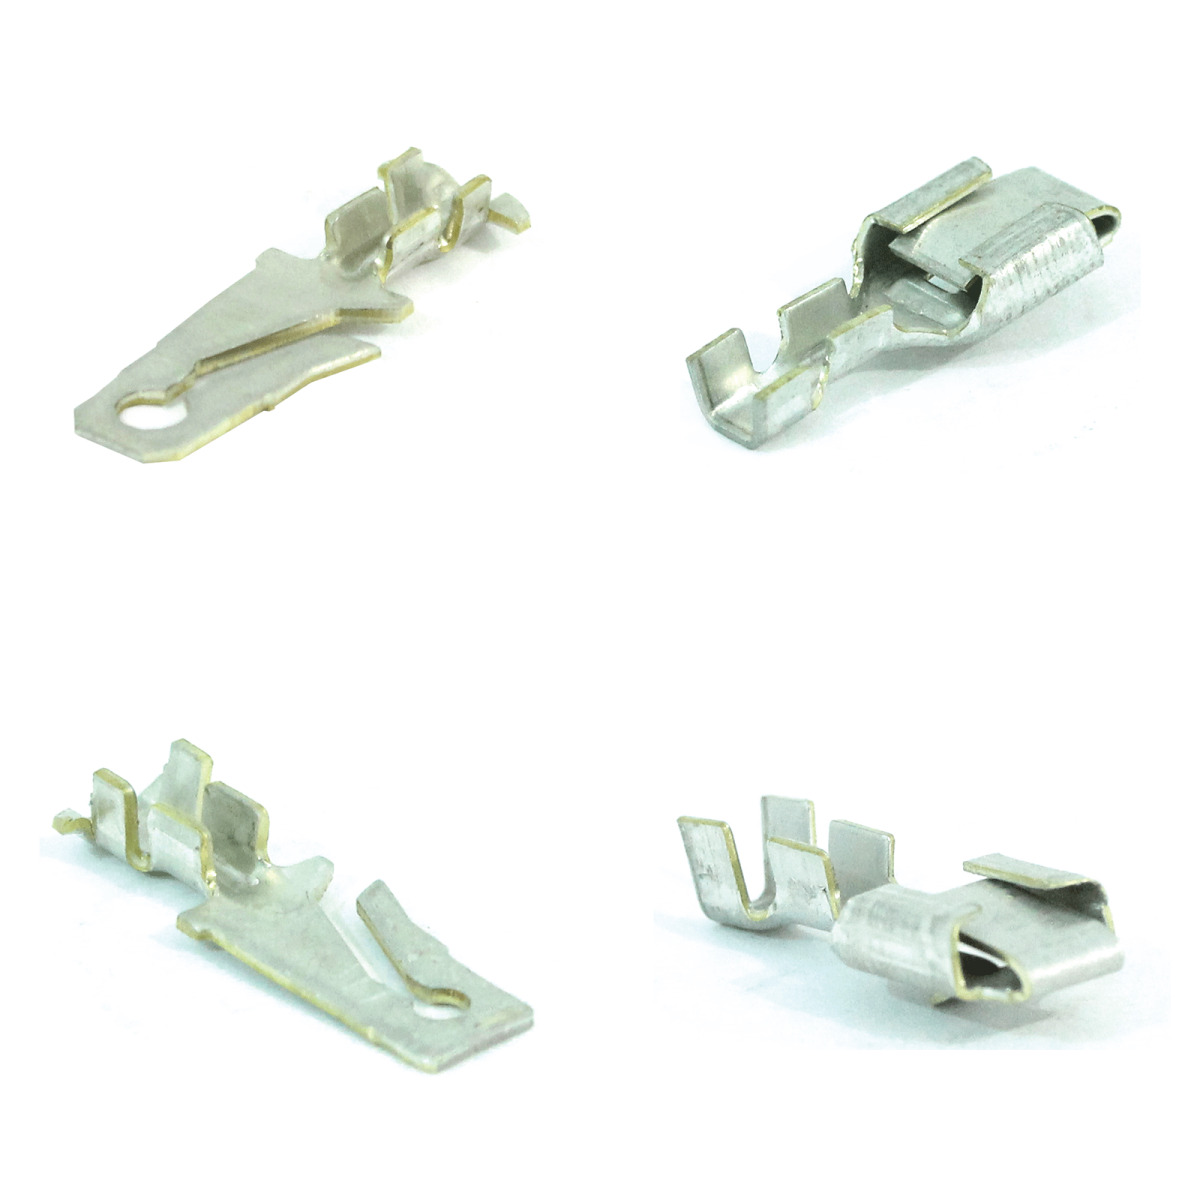 Delphi Packard 56 Series Terminals - Male and Female - 18,16-14